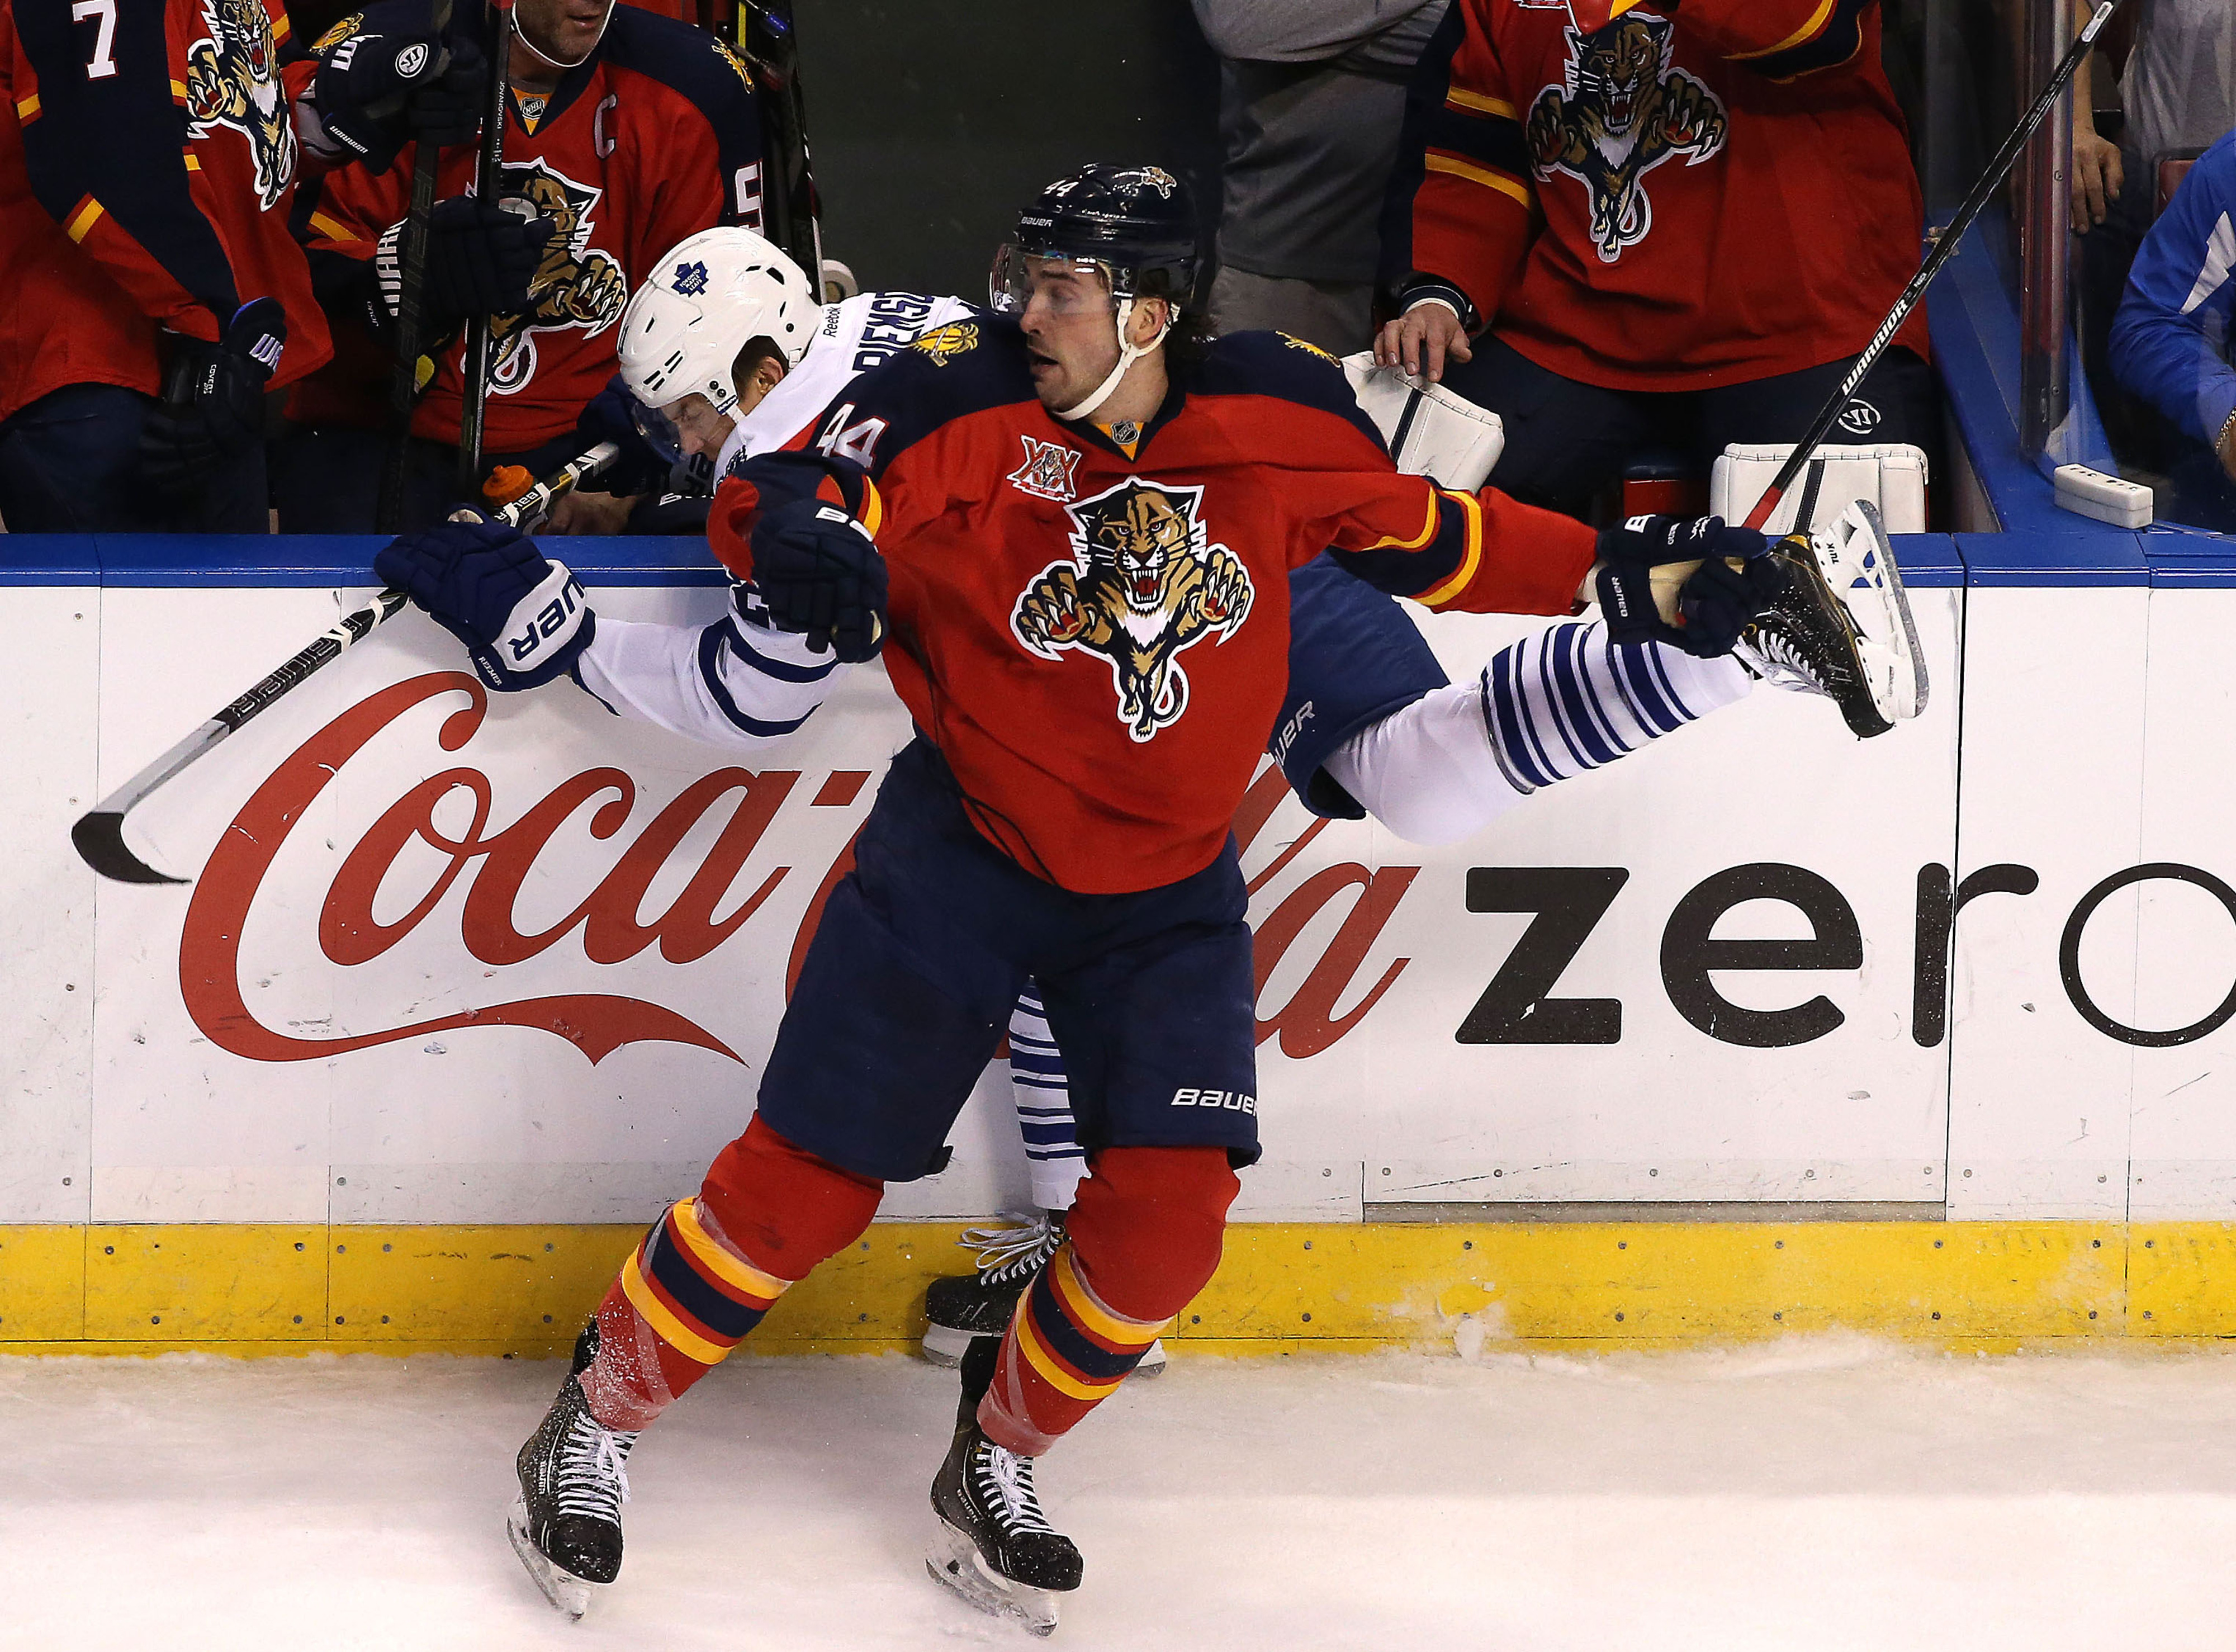 Gudbranson has proven he can be an intimidating force on the blue line.